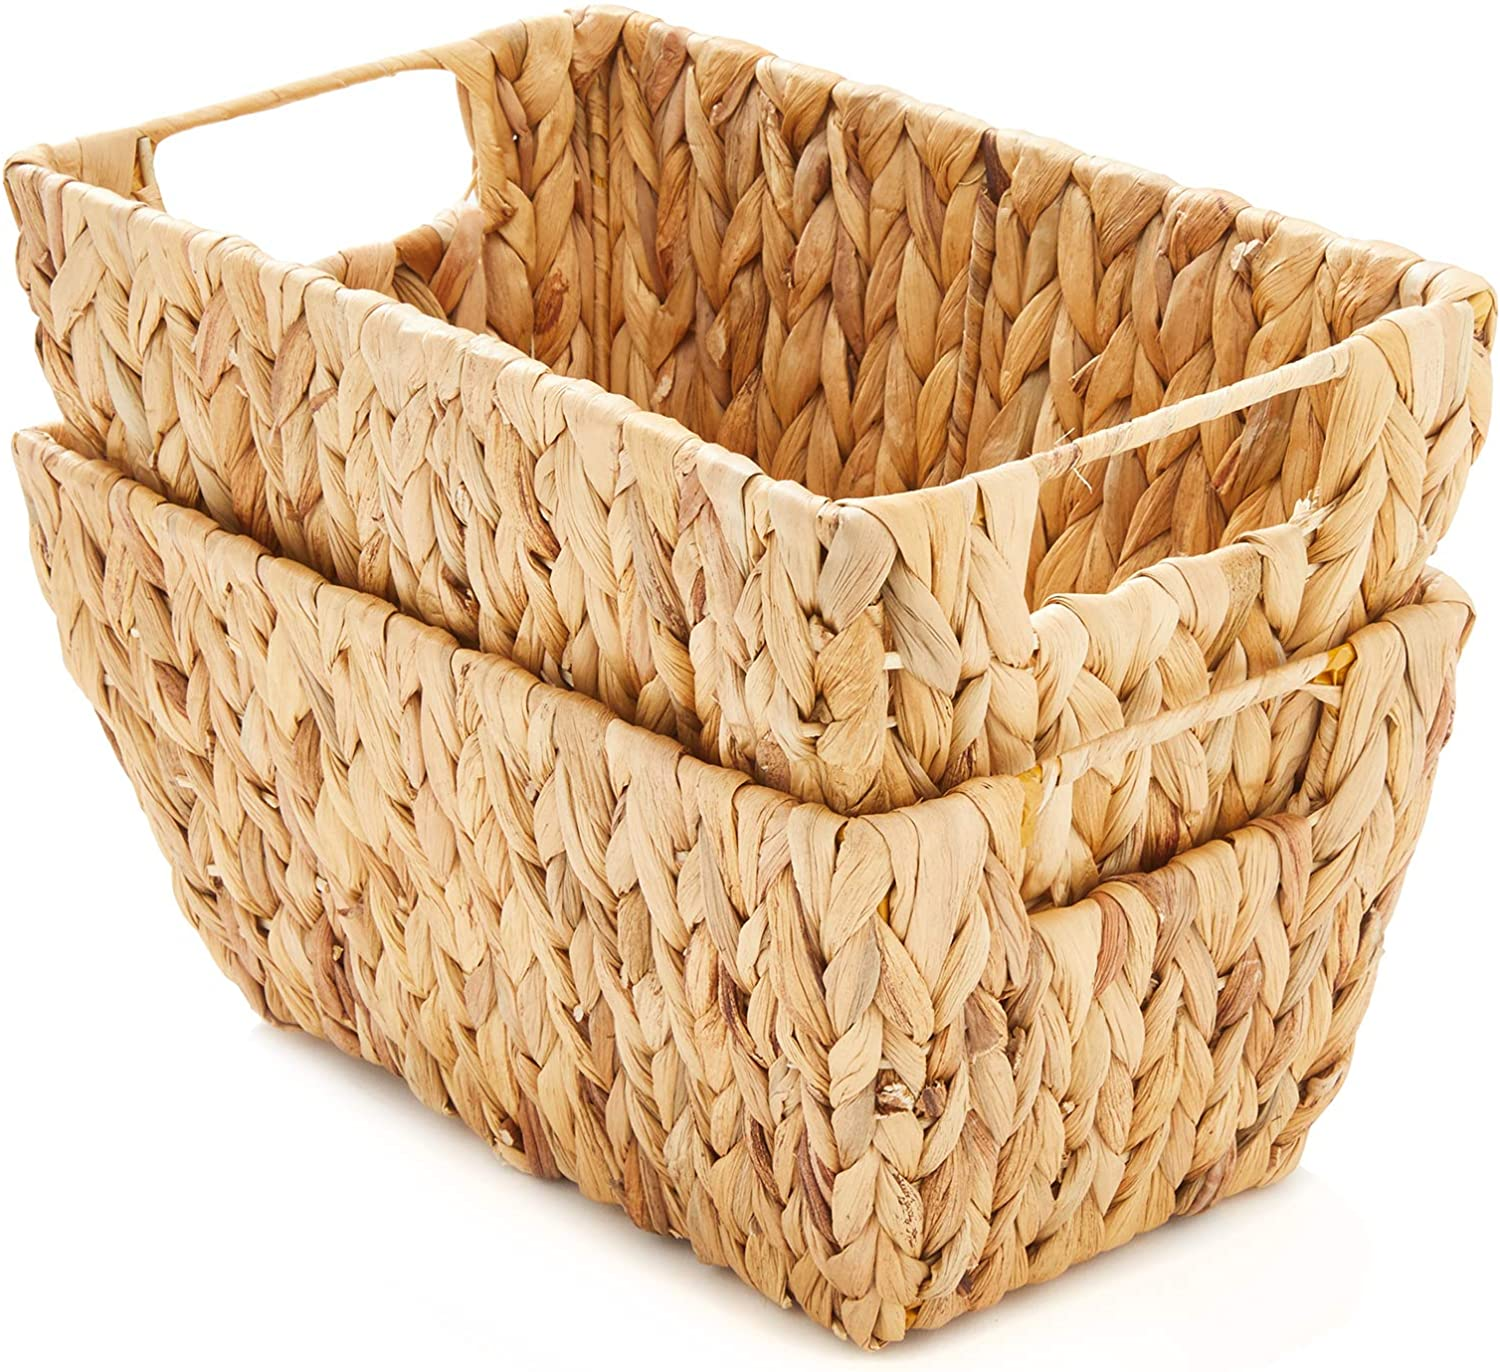 Americanflat Natural Set of 2 Rectangular Water Hyacinth Storage Baskets with Handles - Hand-Woven - Home Organizer Bins - Natural Water Hyacinth - Eco-Friendly